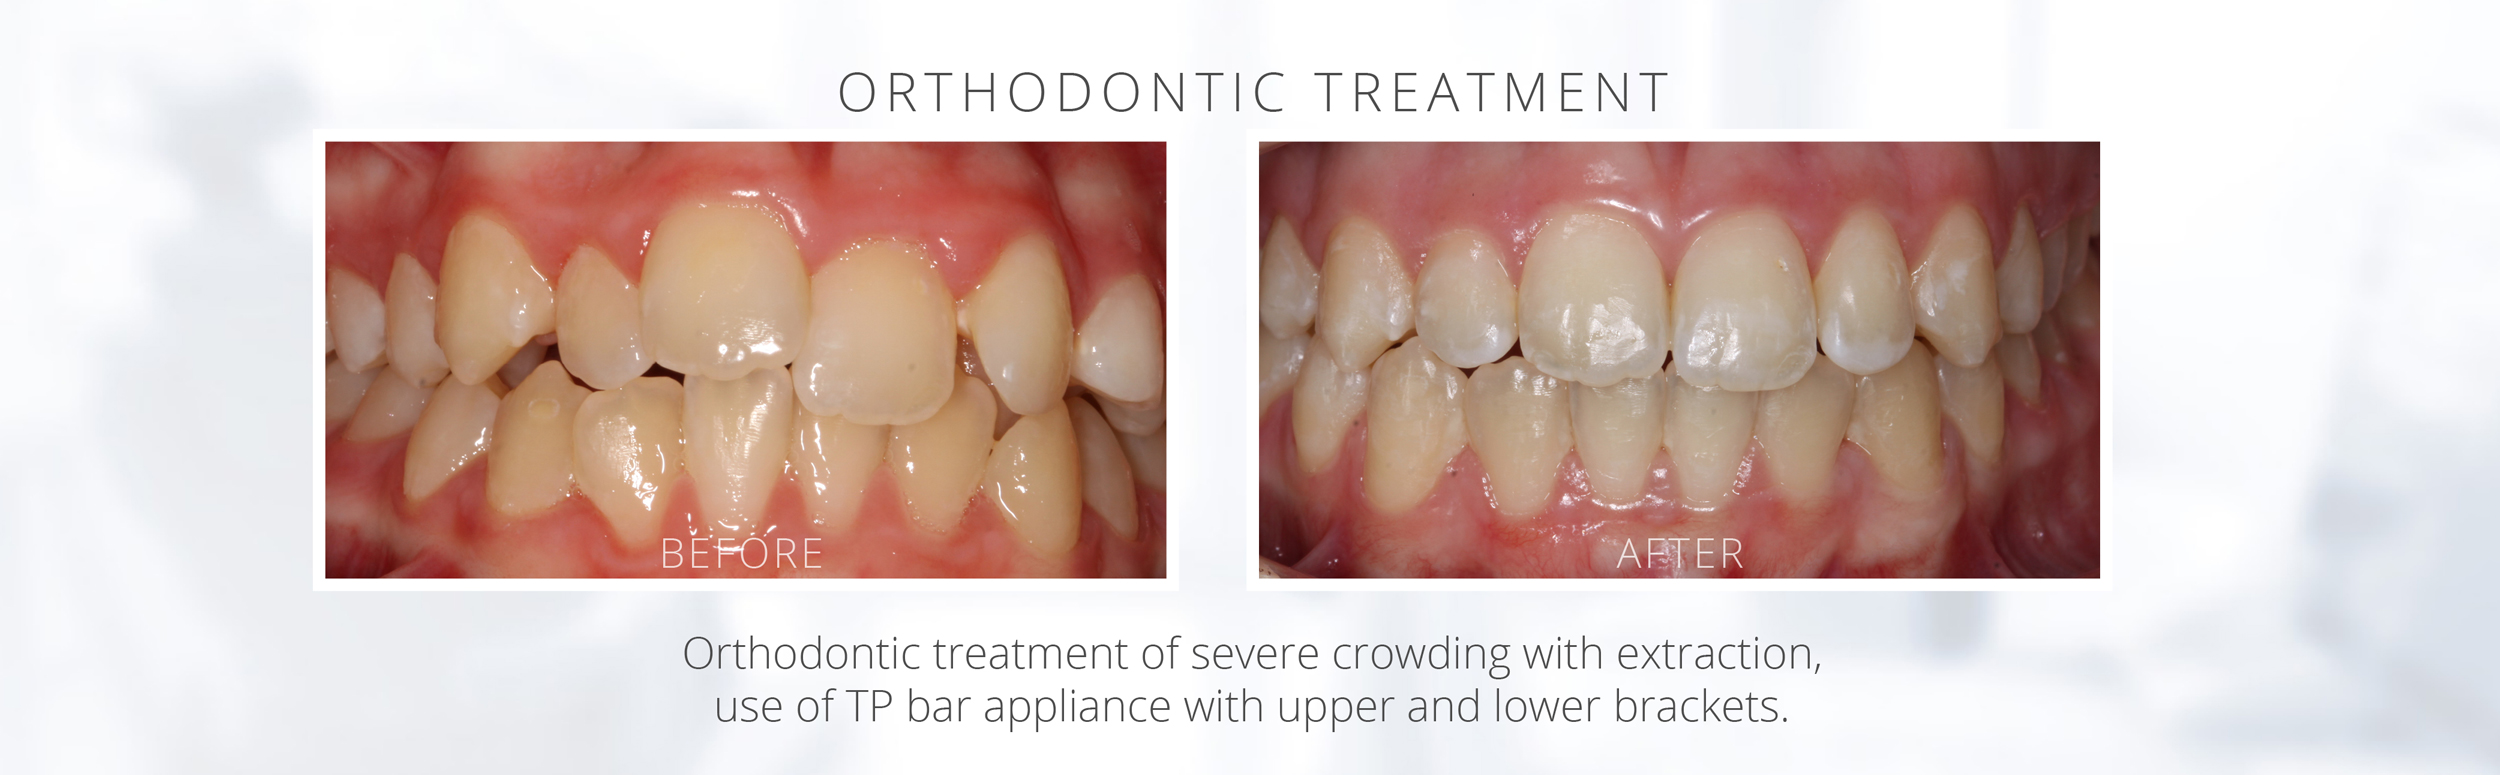 Orthodontic treatment of severe crowding with extraction, use of TP bar appliance with upper and lower brackets